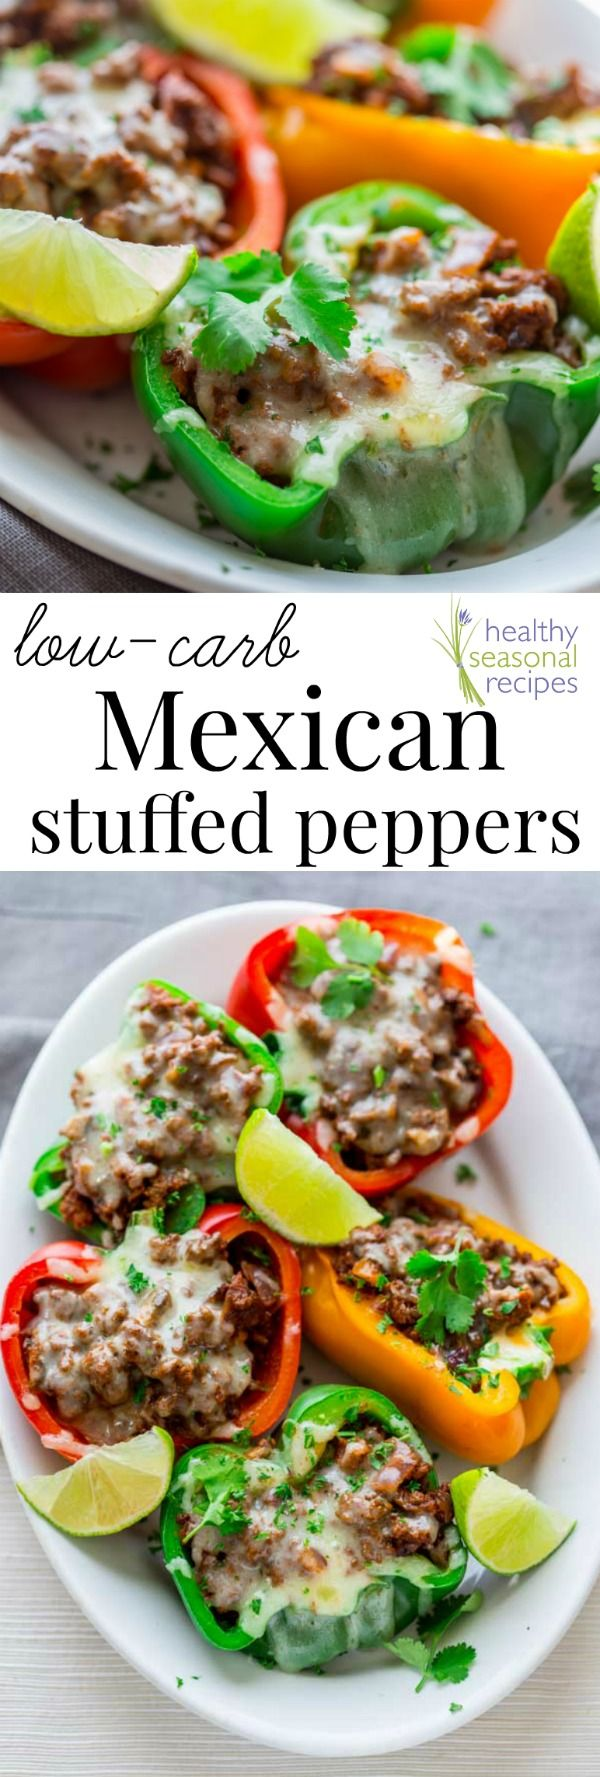 low carb mexican stuffed peppers